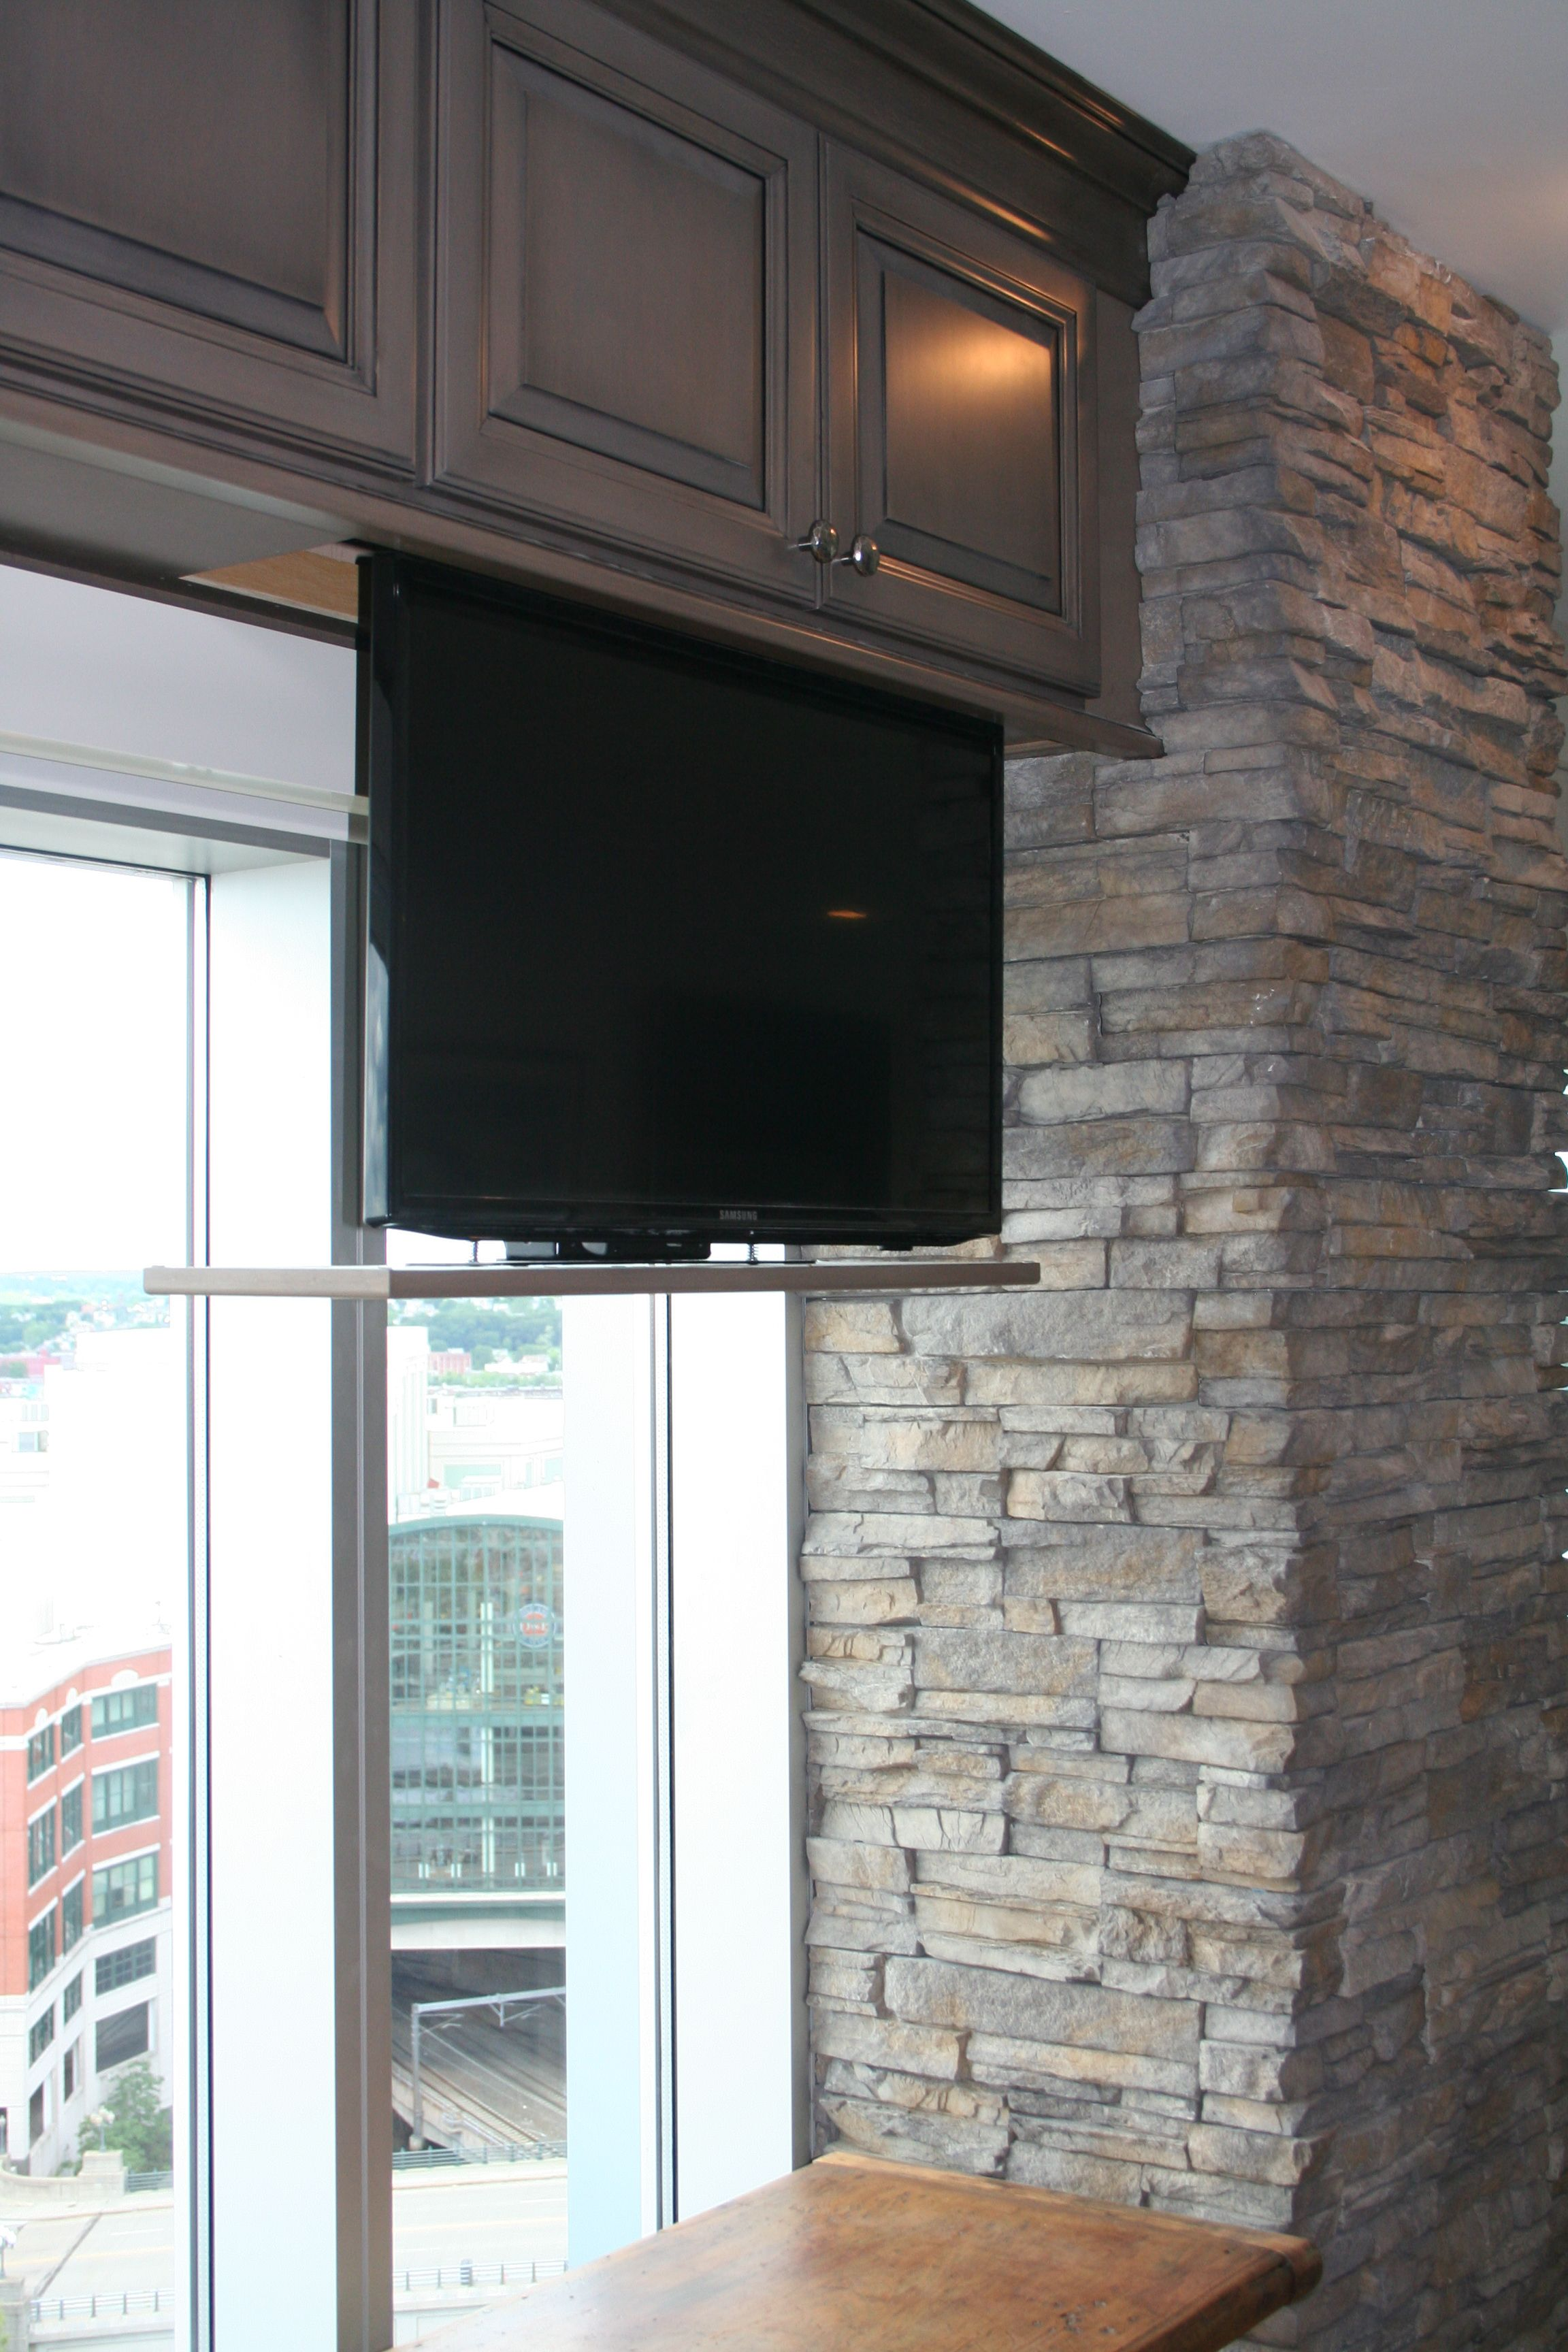 How High To Mount Tv On Wall In Bedroom Hidden Tv In Kitchen Cabinet Rhodeislandkitchen Details